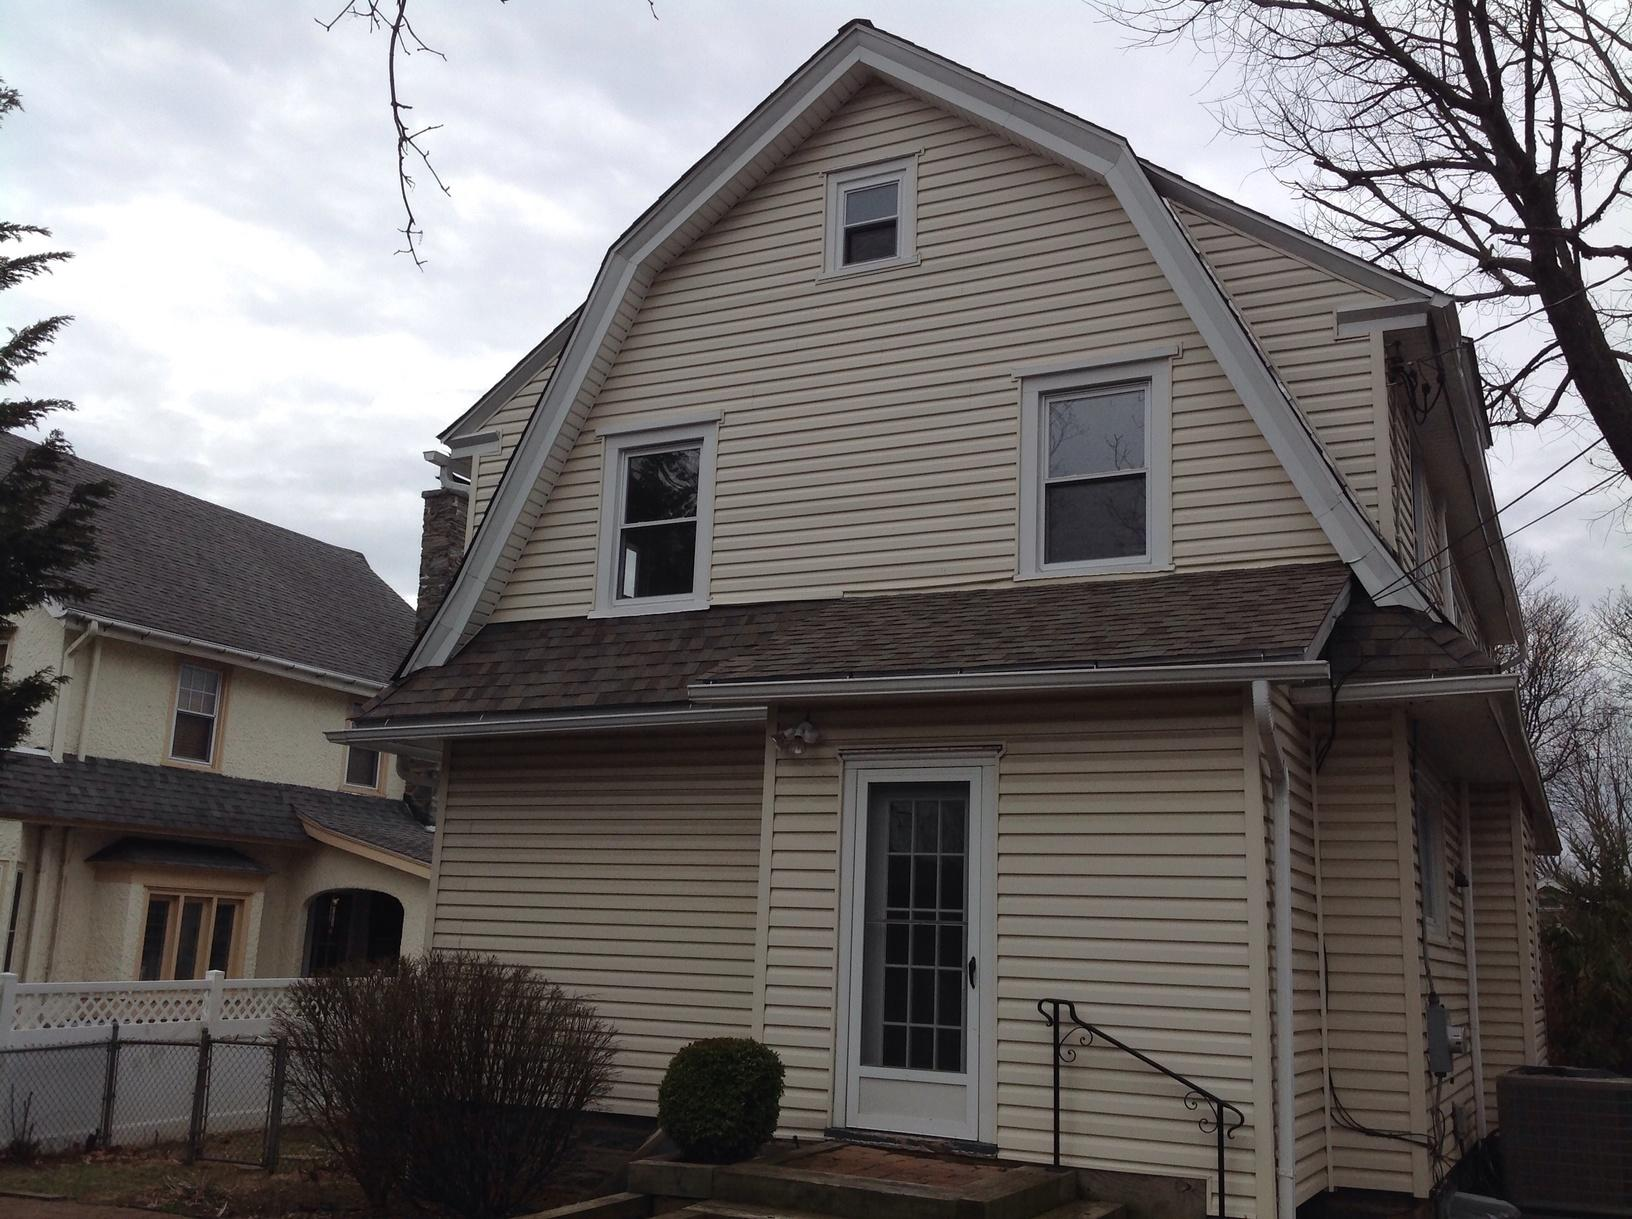 Roofing Services Shingle Roof Replacement In Havertown